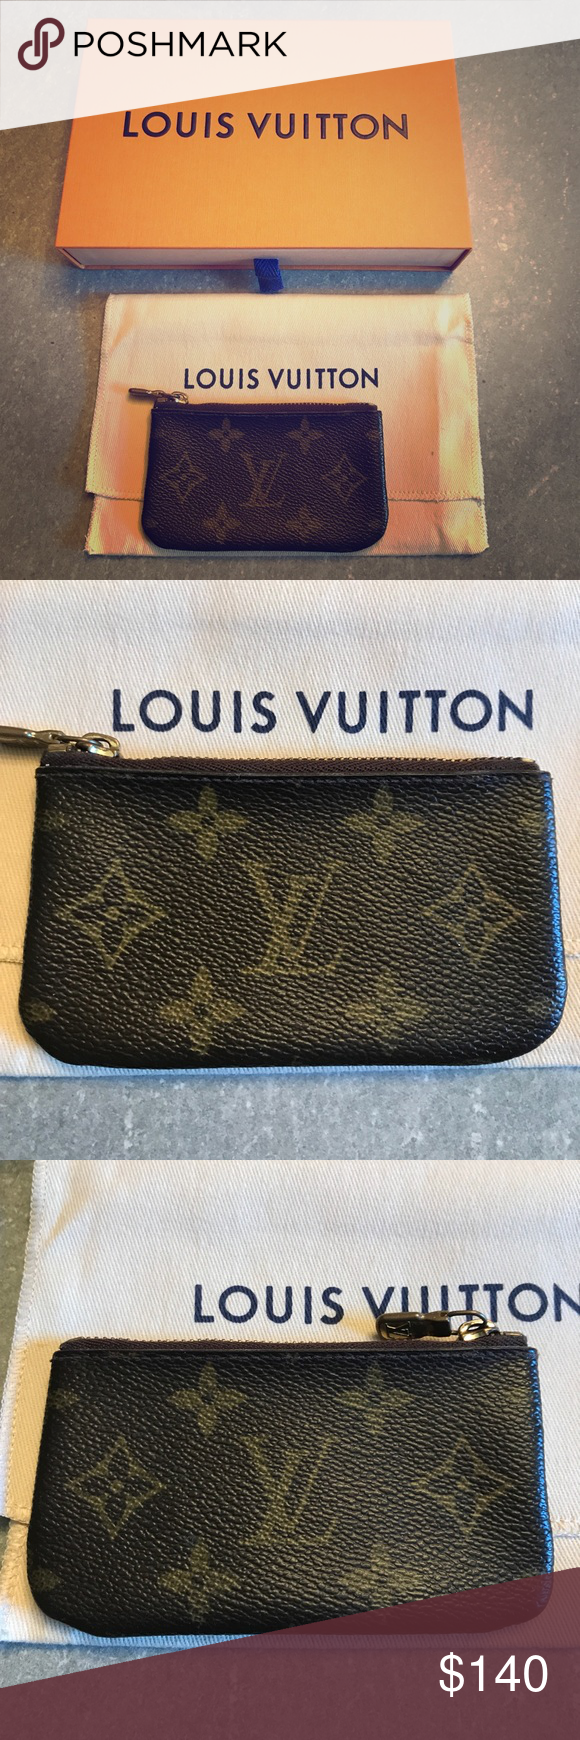 Authentic Louis Vuitton Key Holder Authentic Louis Vuitton key pouch holds keys and change. Chain and clip has come apart. Can be repaired or used without the clip. Will send with LV box and dust bag. Louis Vuitton Bags Wallets